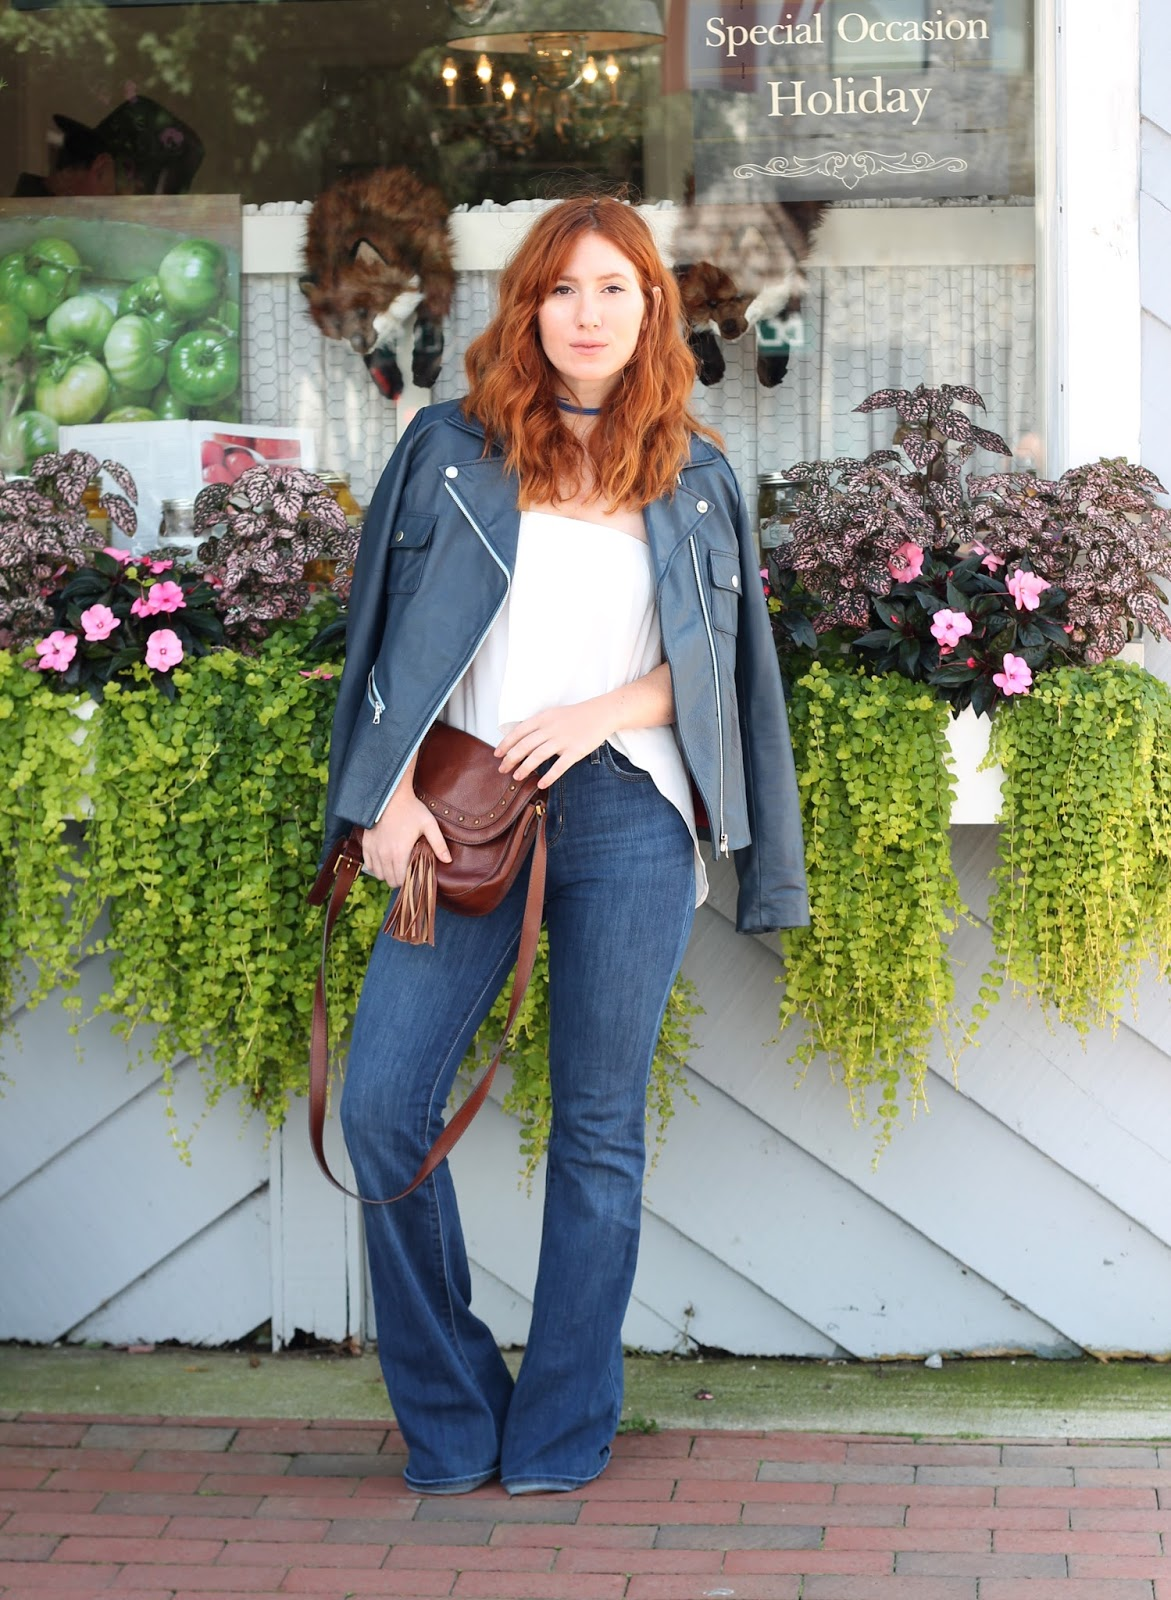 jeans, flares, outfit ideas, summer, spring, style, flare jeans, how to wear flares, high waisted, levis, colored leather jacket